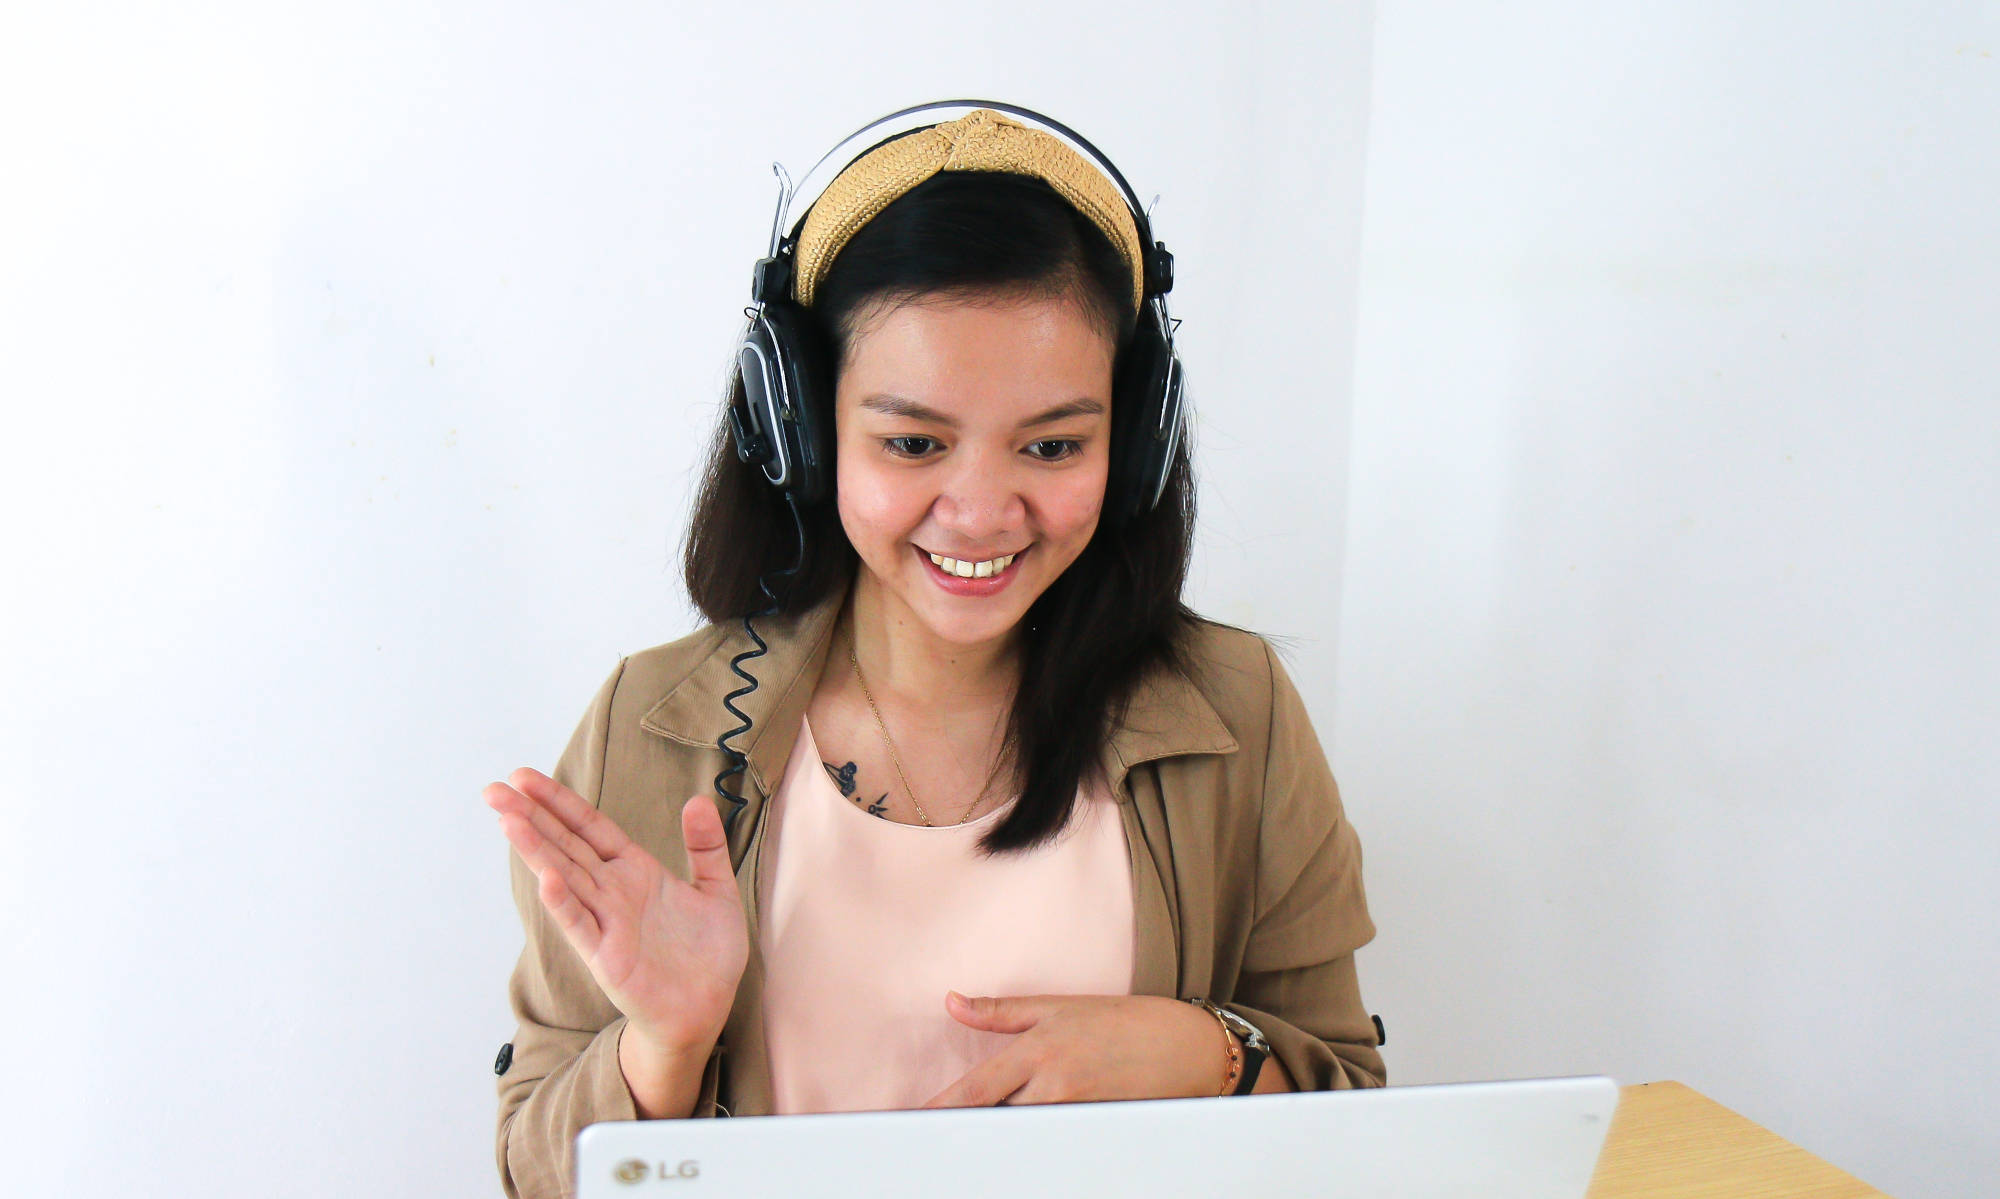 Young asian woman smiling in front of her laptop, with her hands indicating she's learning directions.